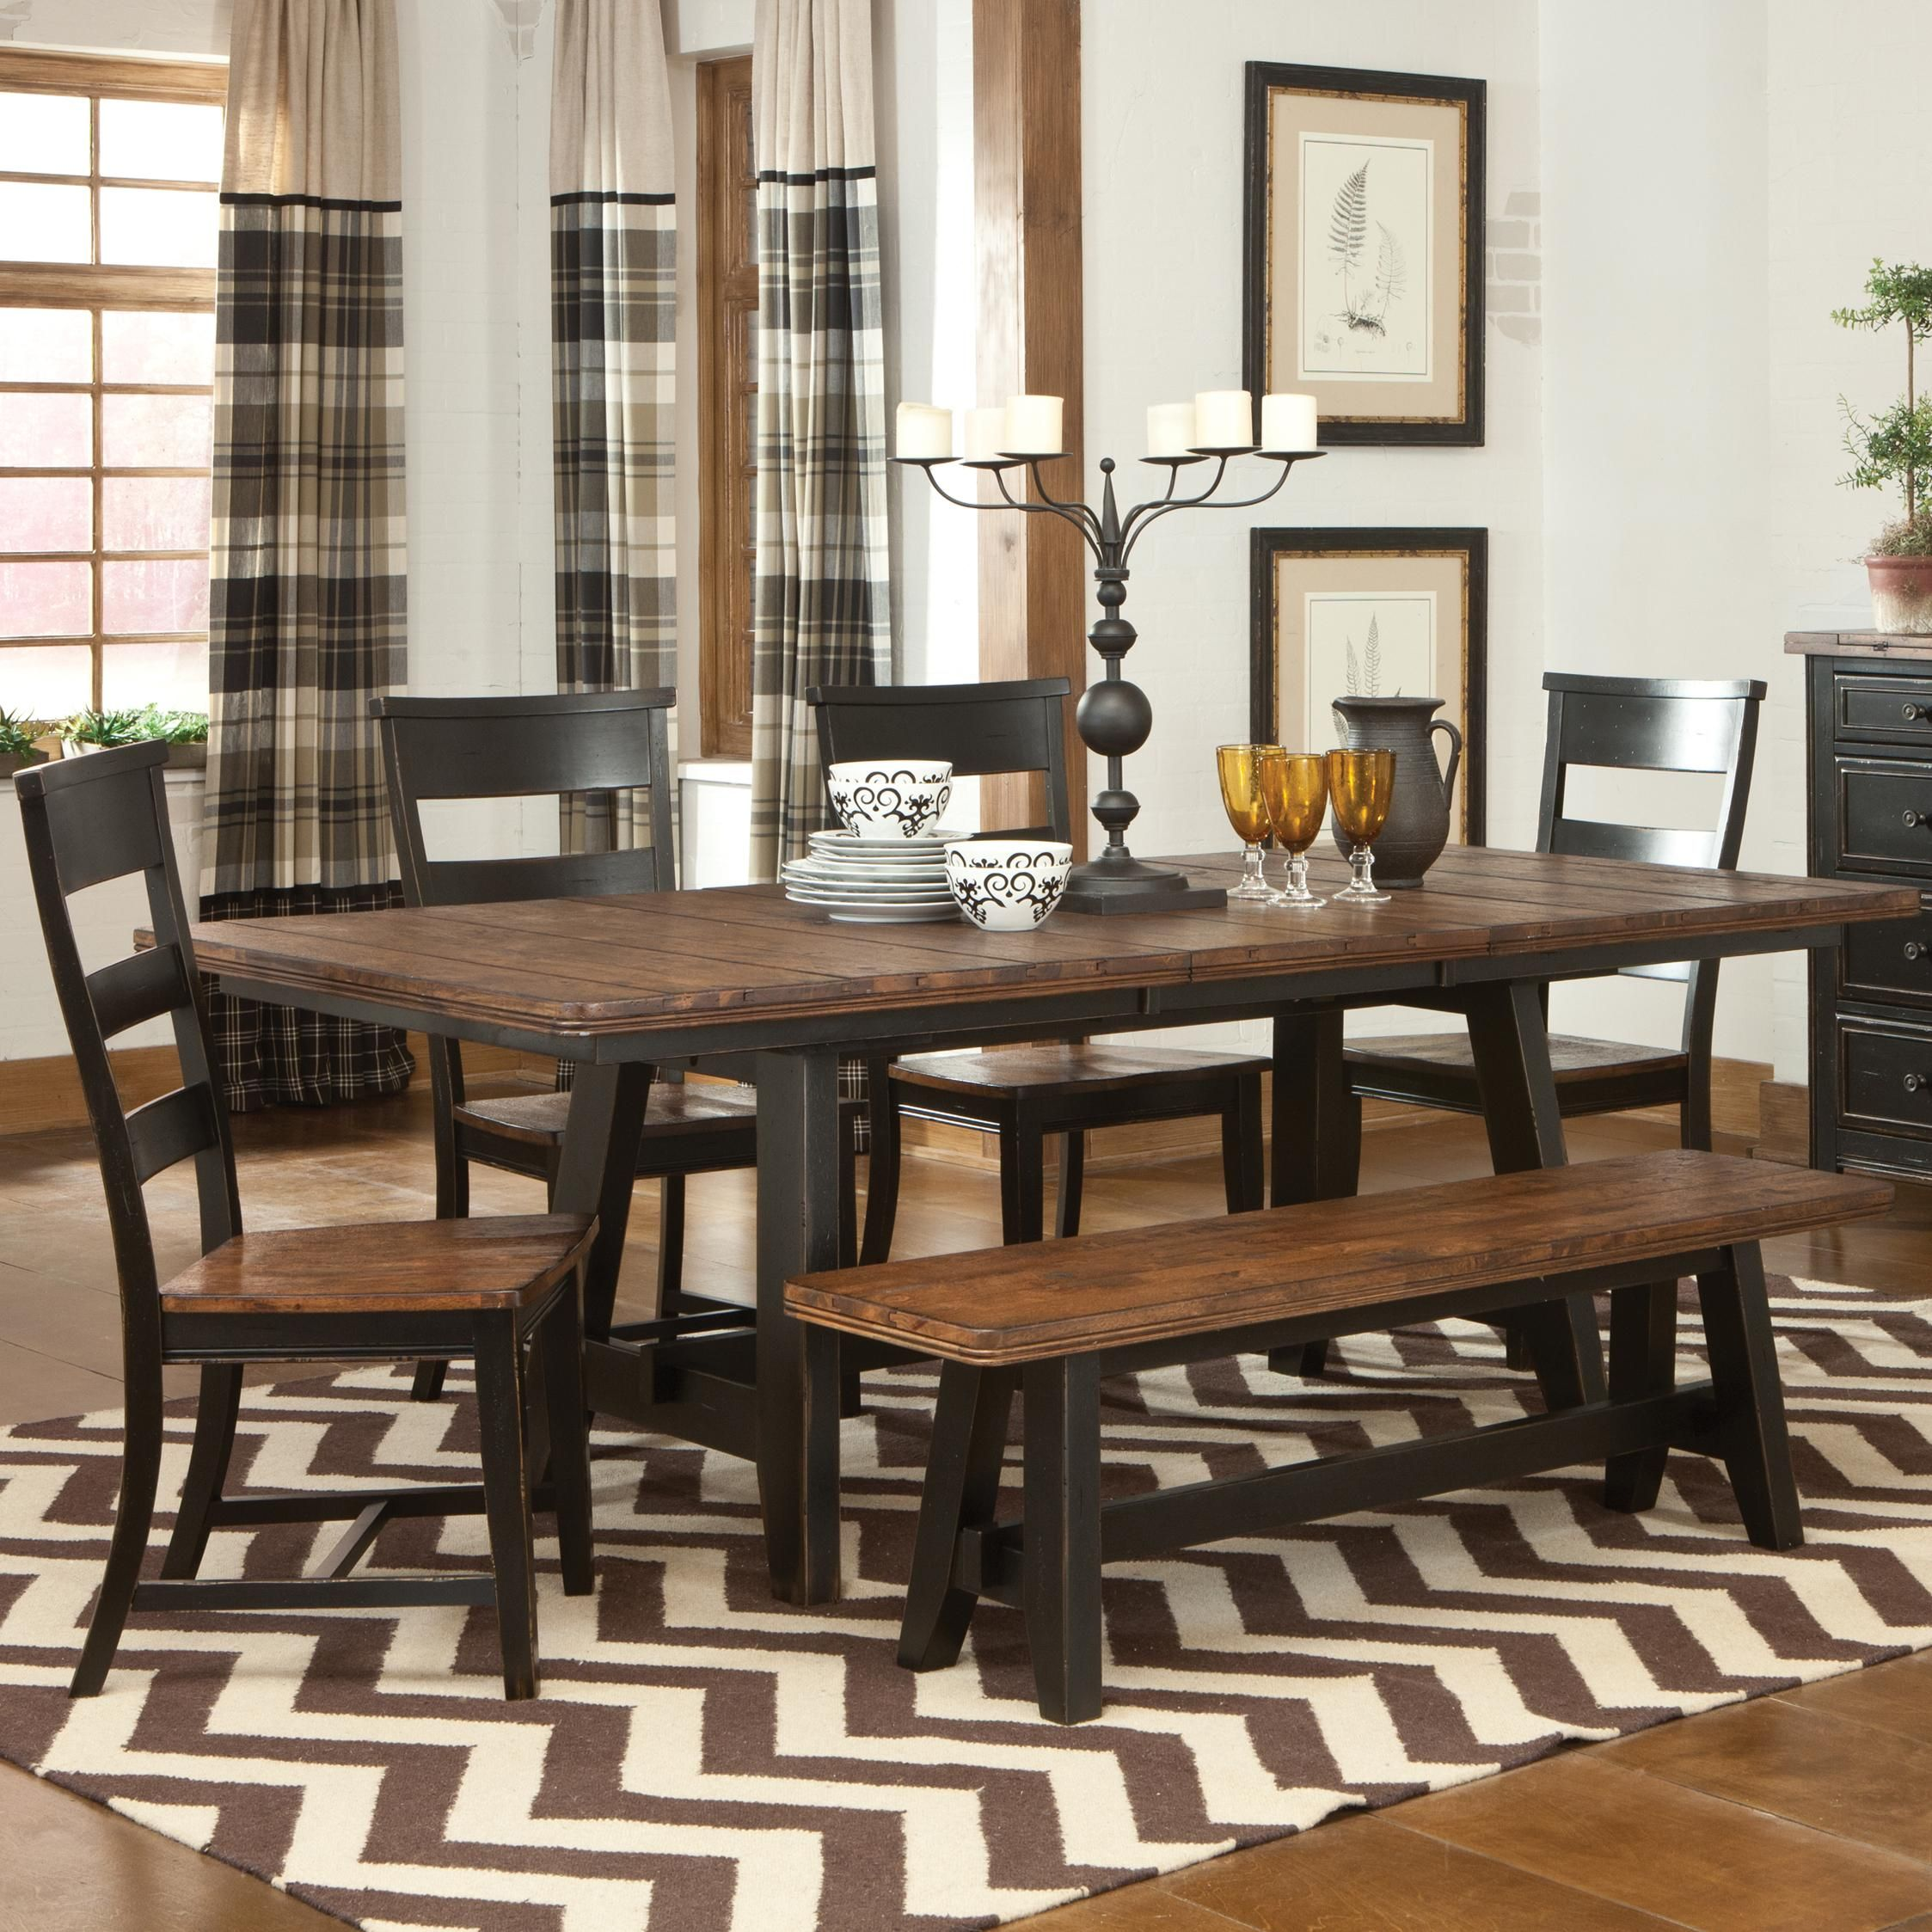 Dining table sets wood and metal dining tables wood and metal dining - Winchester 6 Piece Trestle Table Set By Kalan Furniture Metal Dining